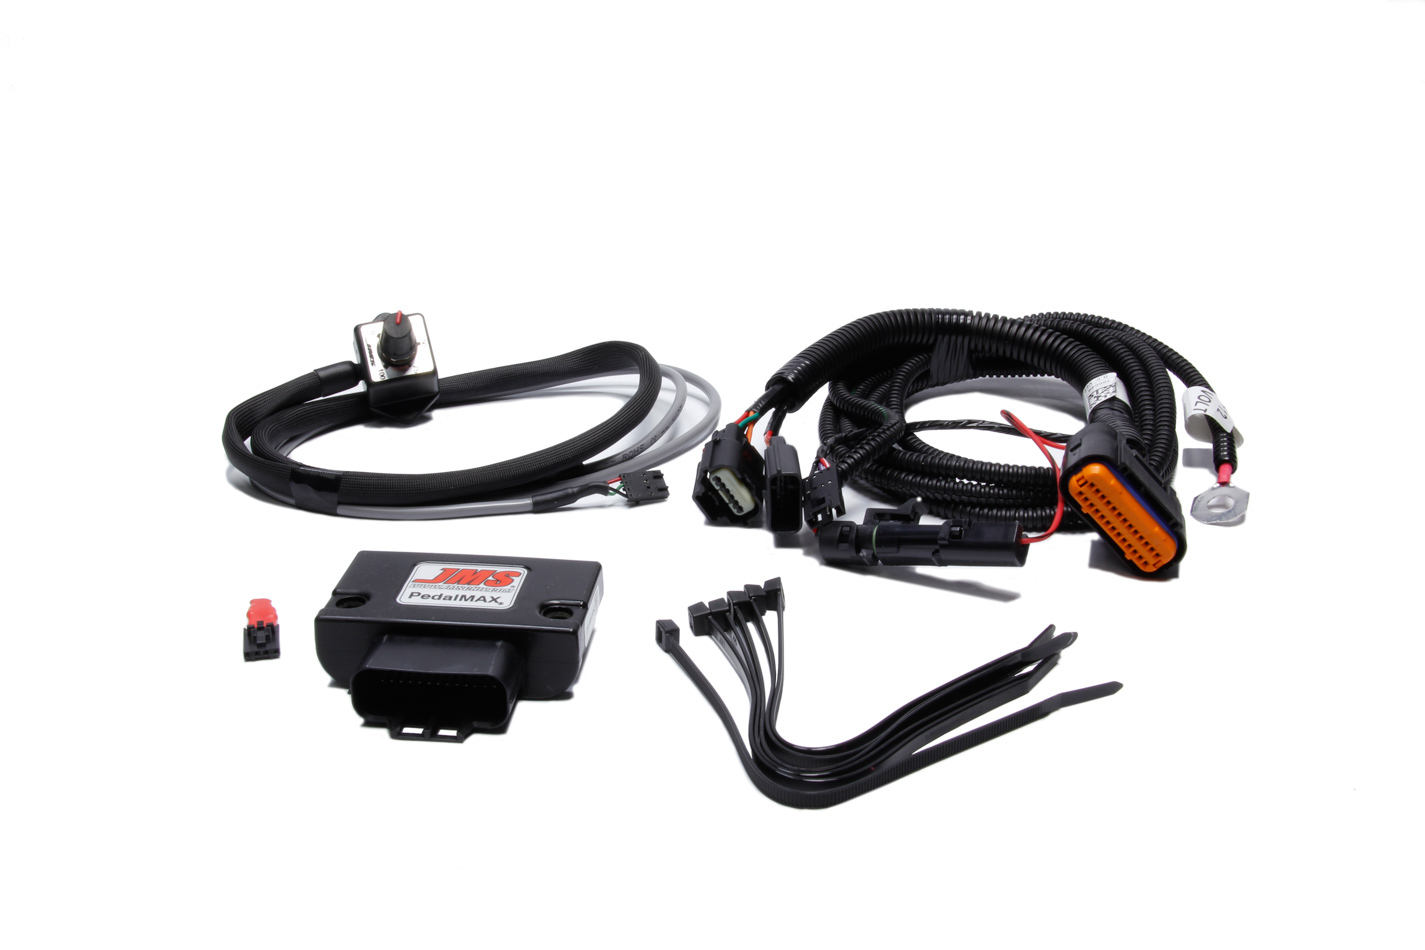 Jms PedalMAX Drive By Wire Throttle Device